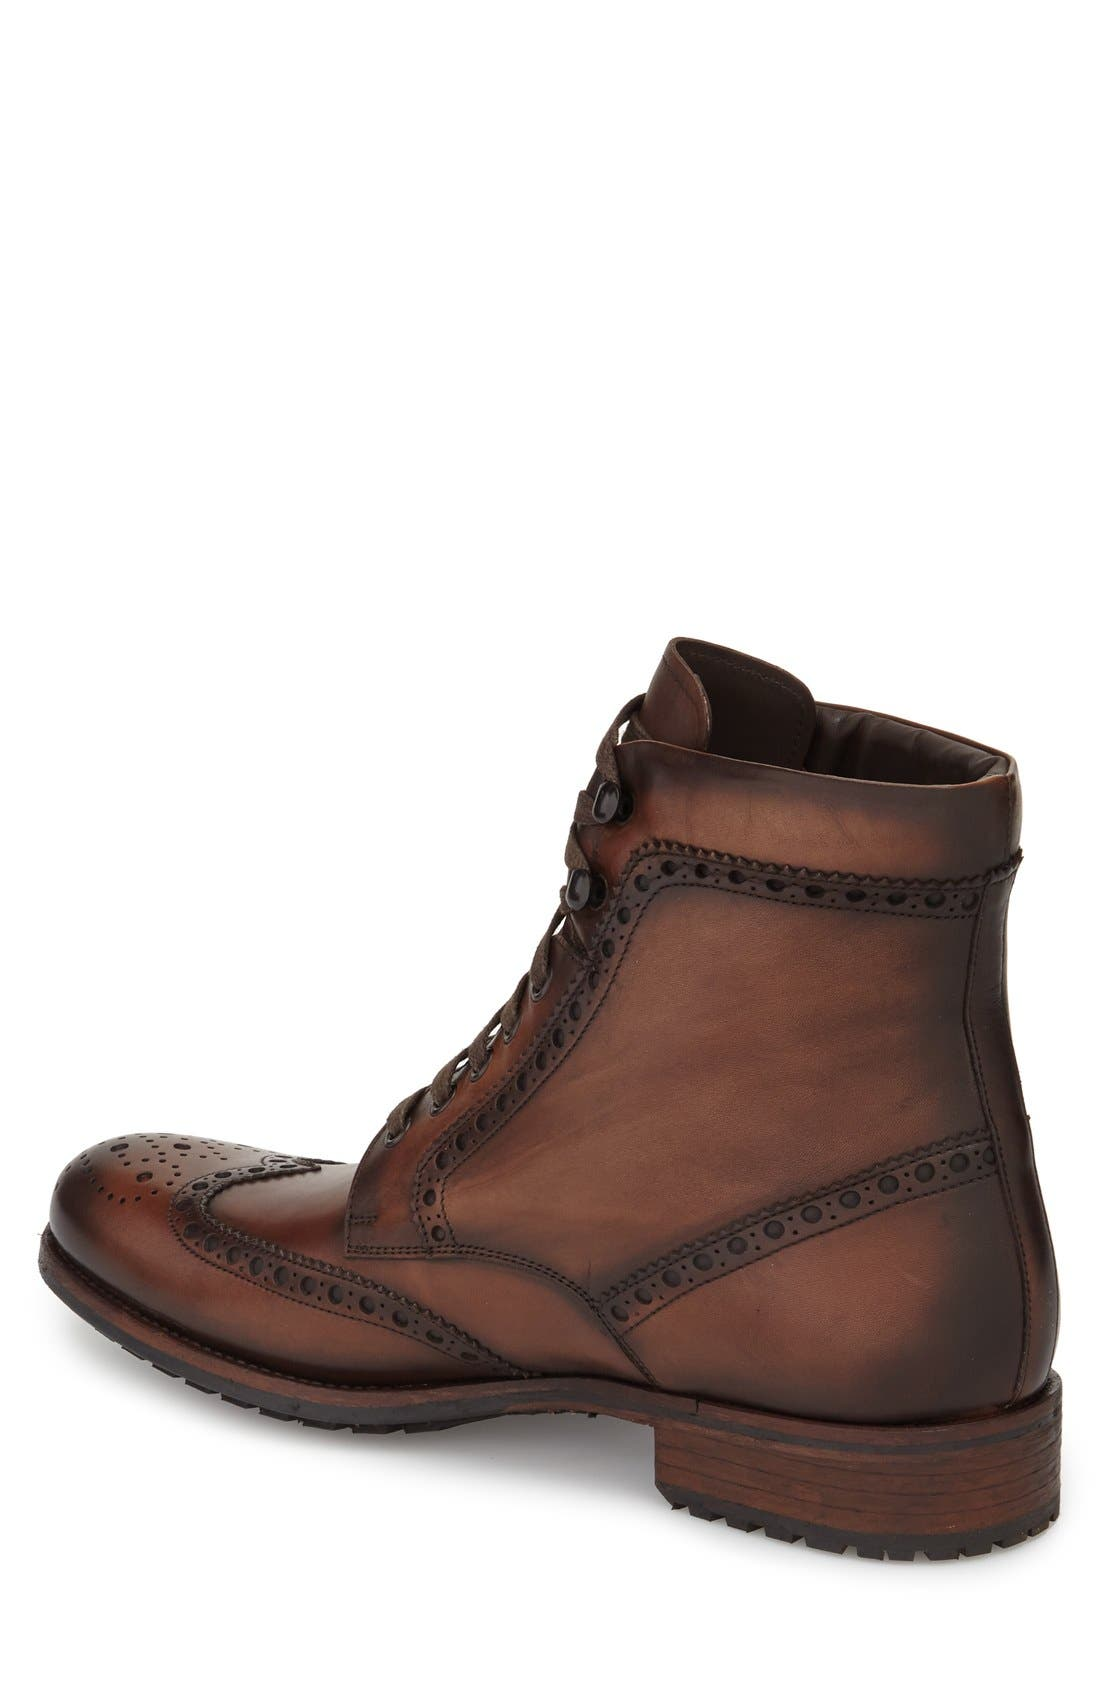 Maddox Wingtip Boot,                             Alternate thumbnail 5, color,